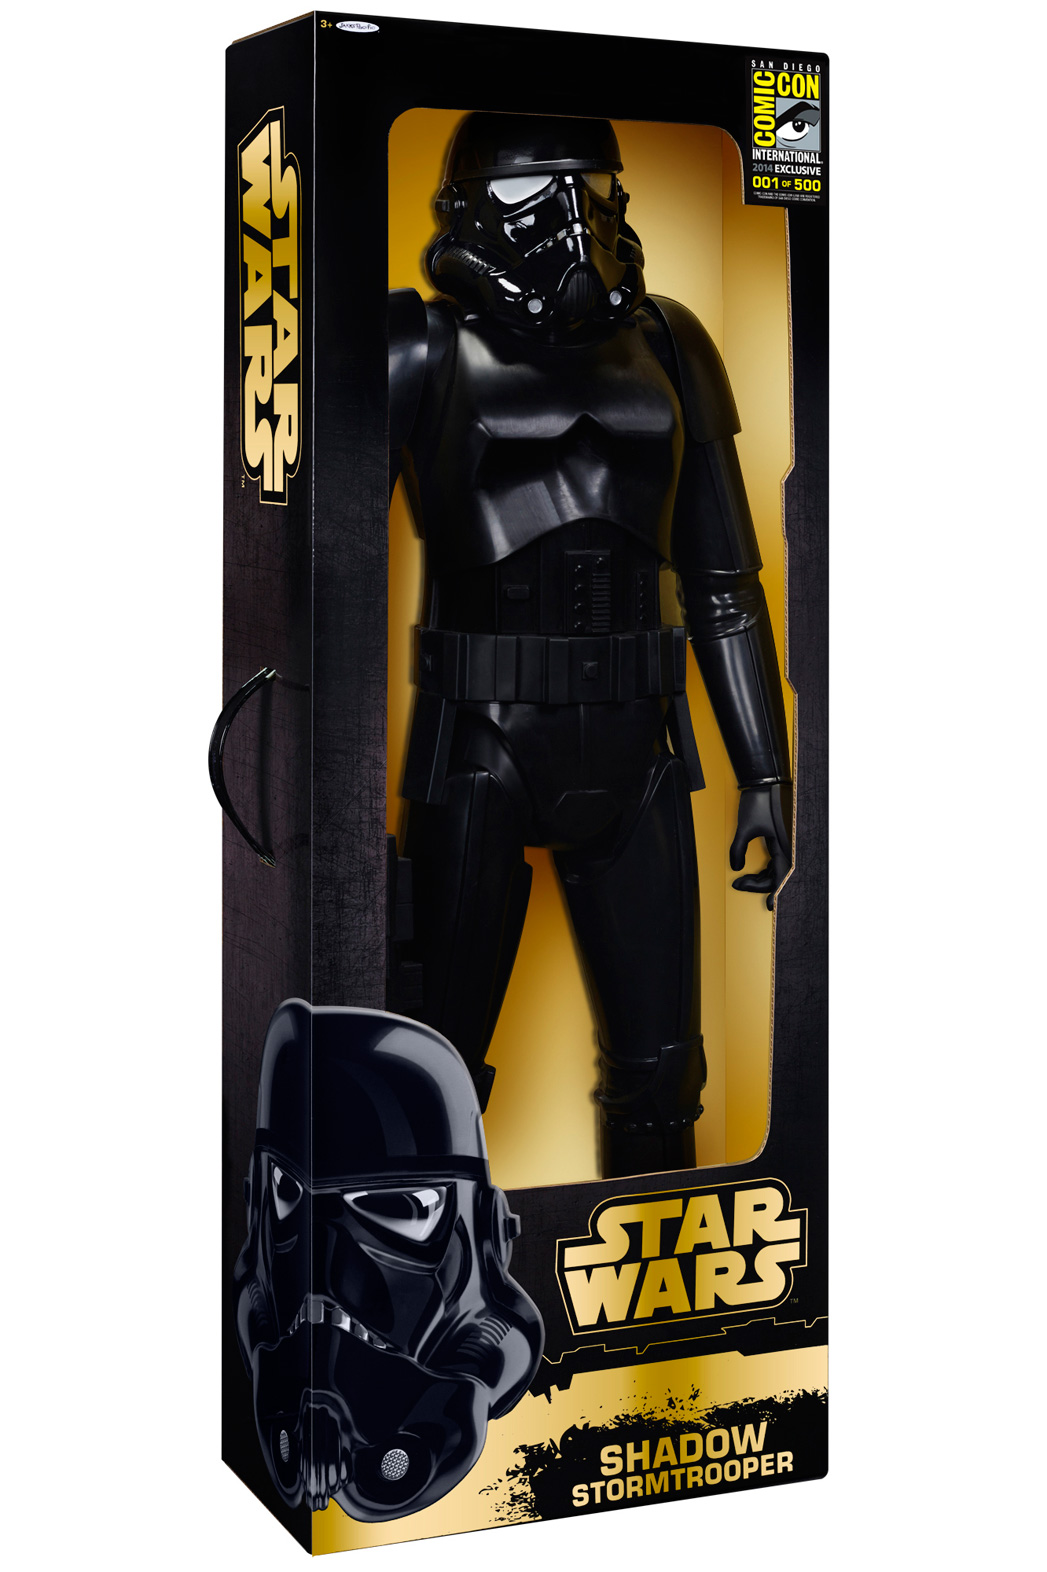 Shadow Storm Trooper Toy - P 2014